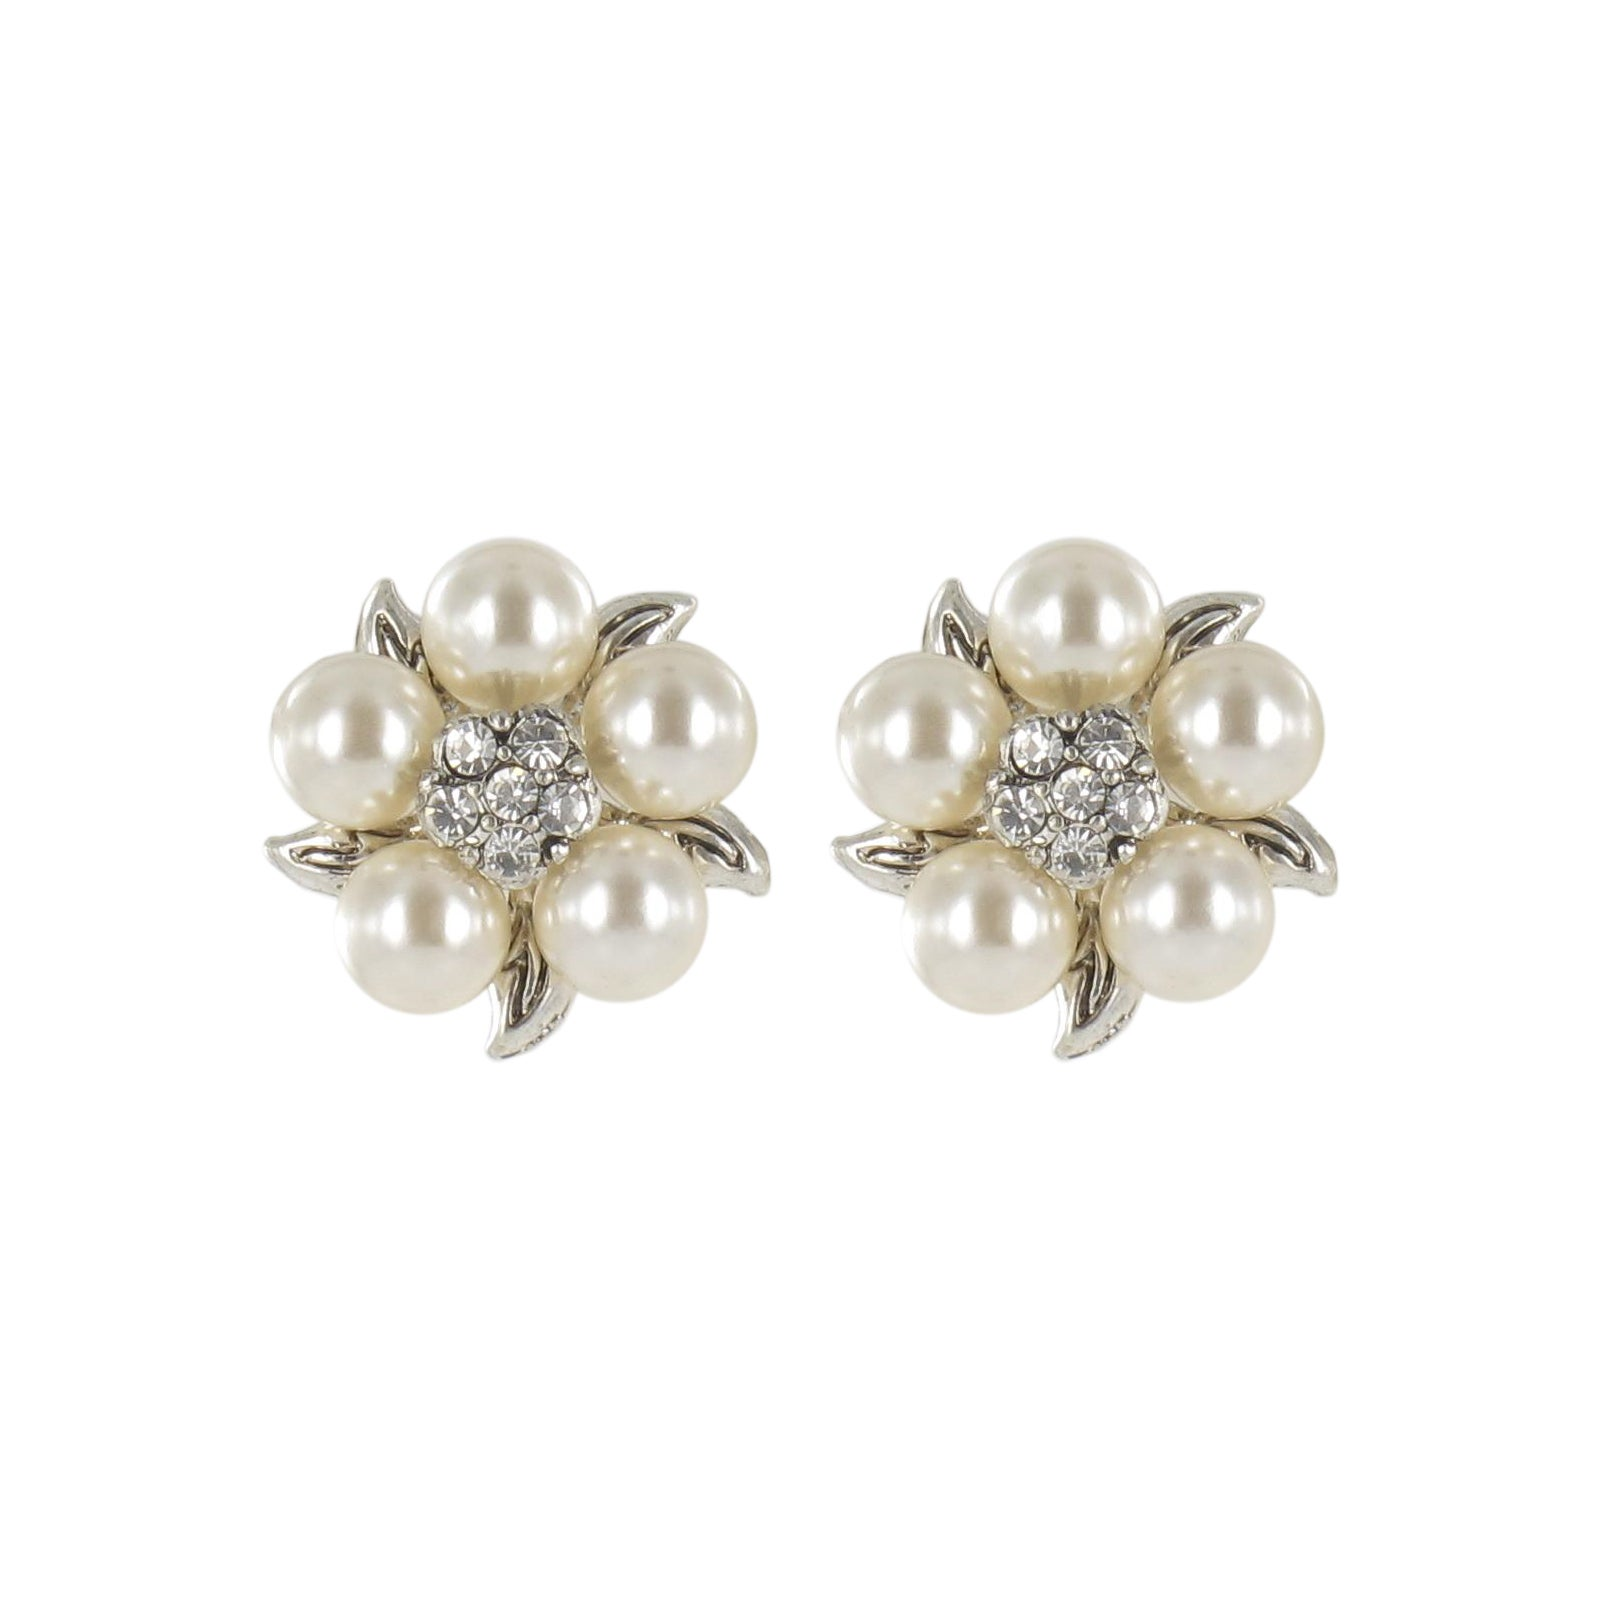 Roman Faux Cream Pearl Crystal Silvertone Flower Button Earrings